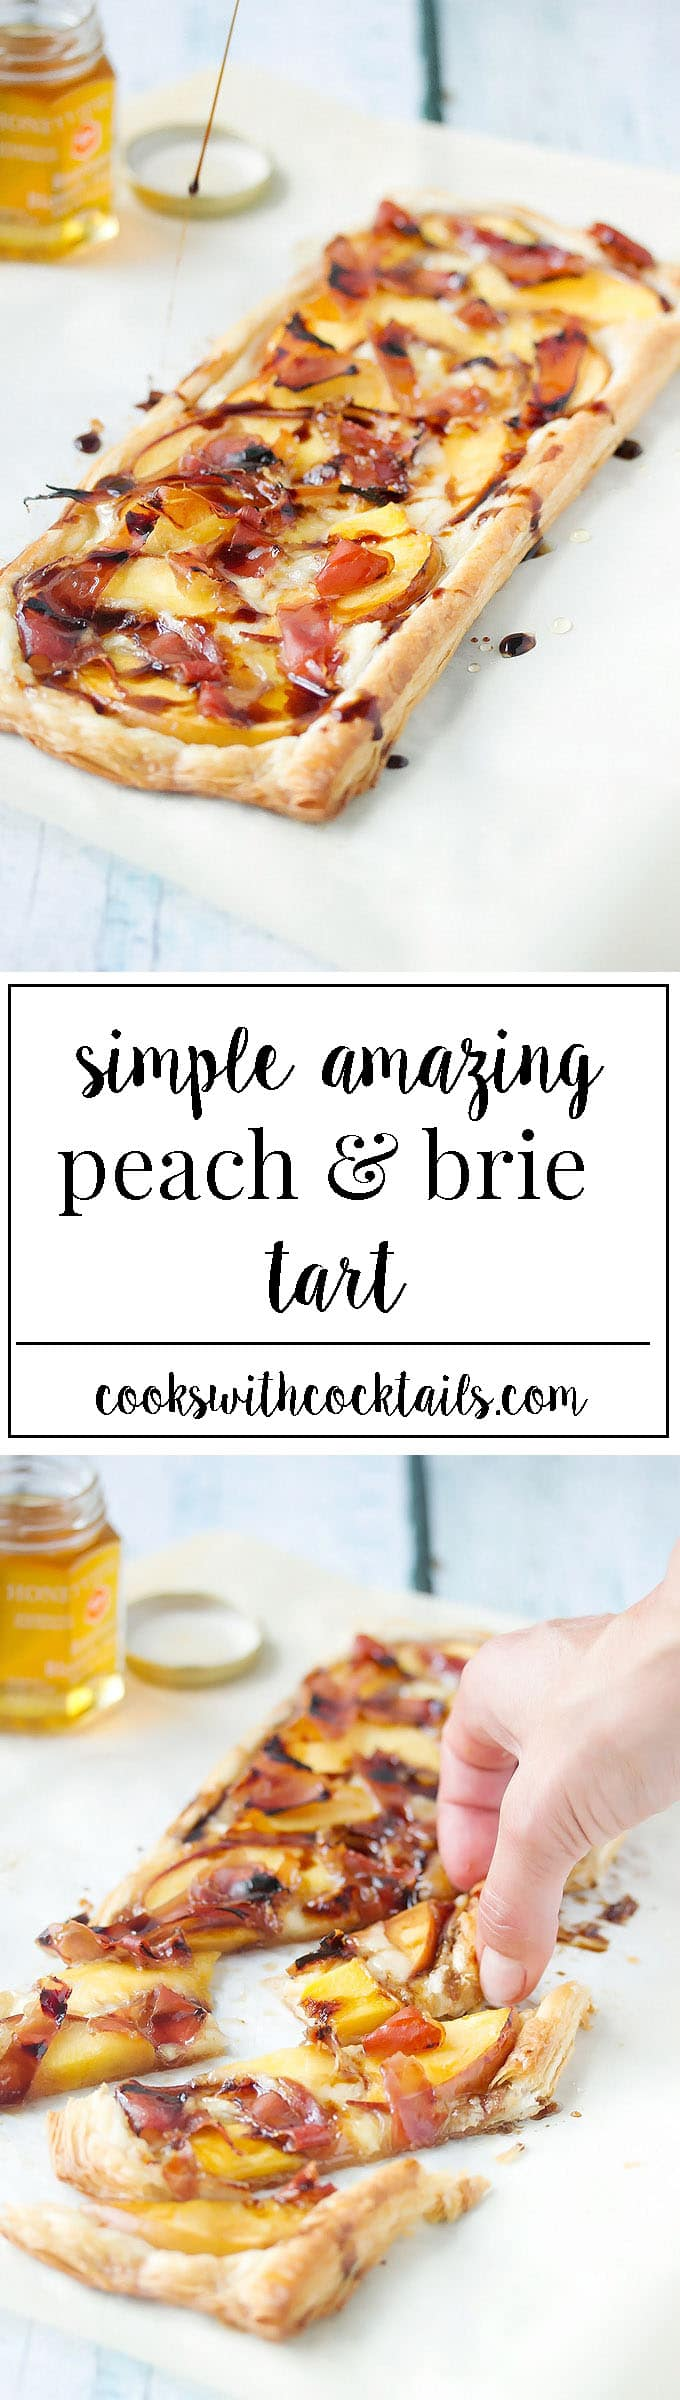 A sweet and savory puff pastry tart baked with peaches, brie and prosciutto then drizzled in honey and a syrupy balsamic reduction. Its so simple and totally amazing. #puffpastrytart #tartrecipe #peachtart #cookswithcocktails